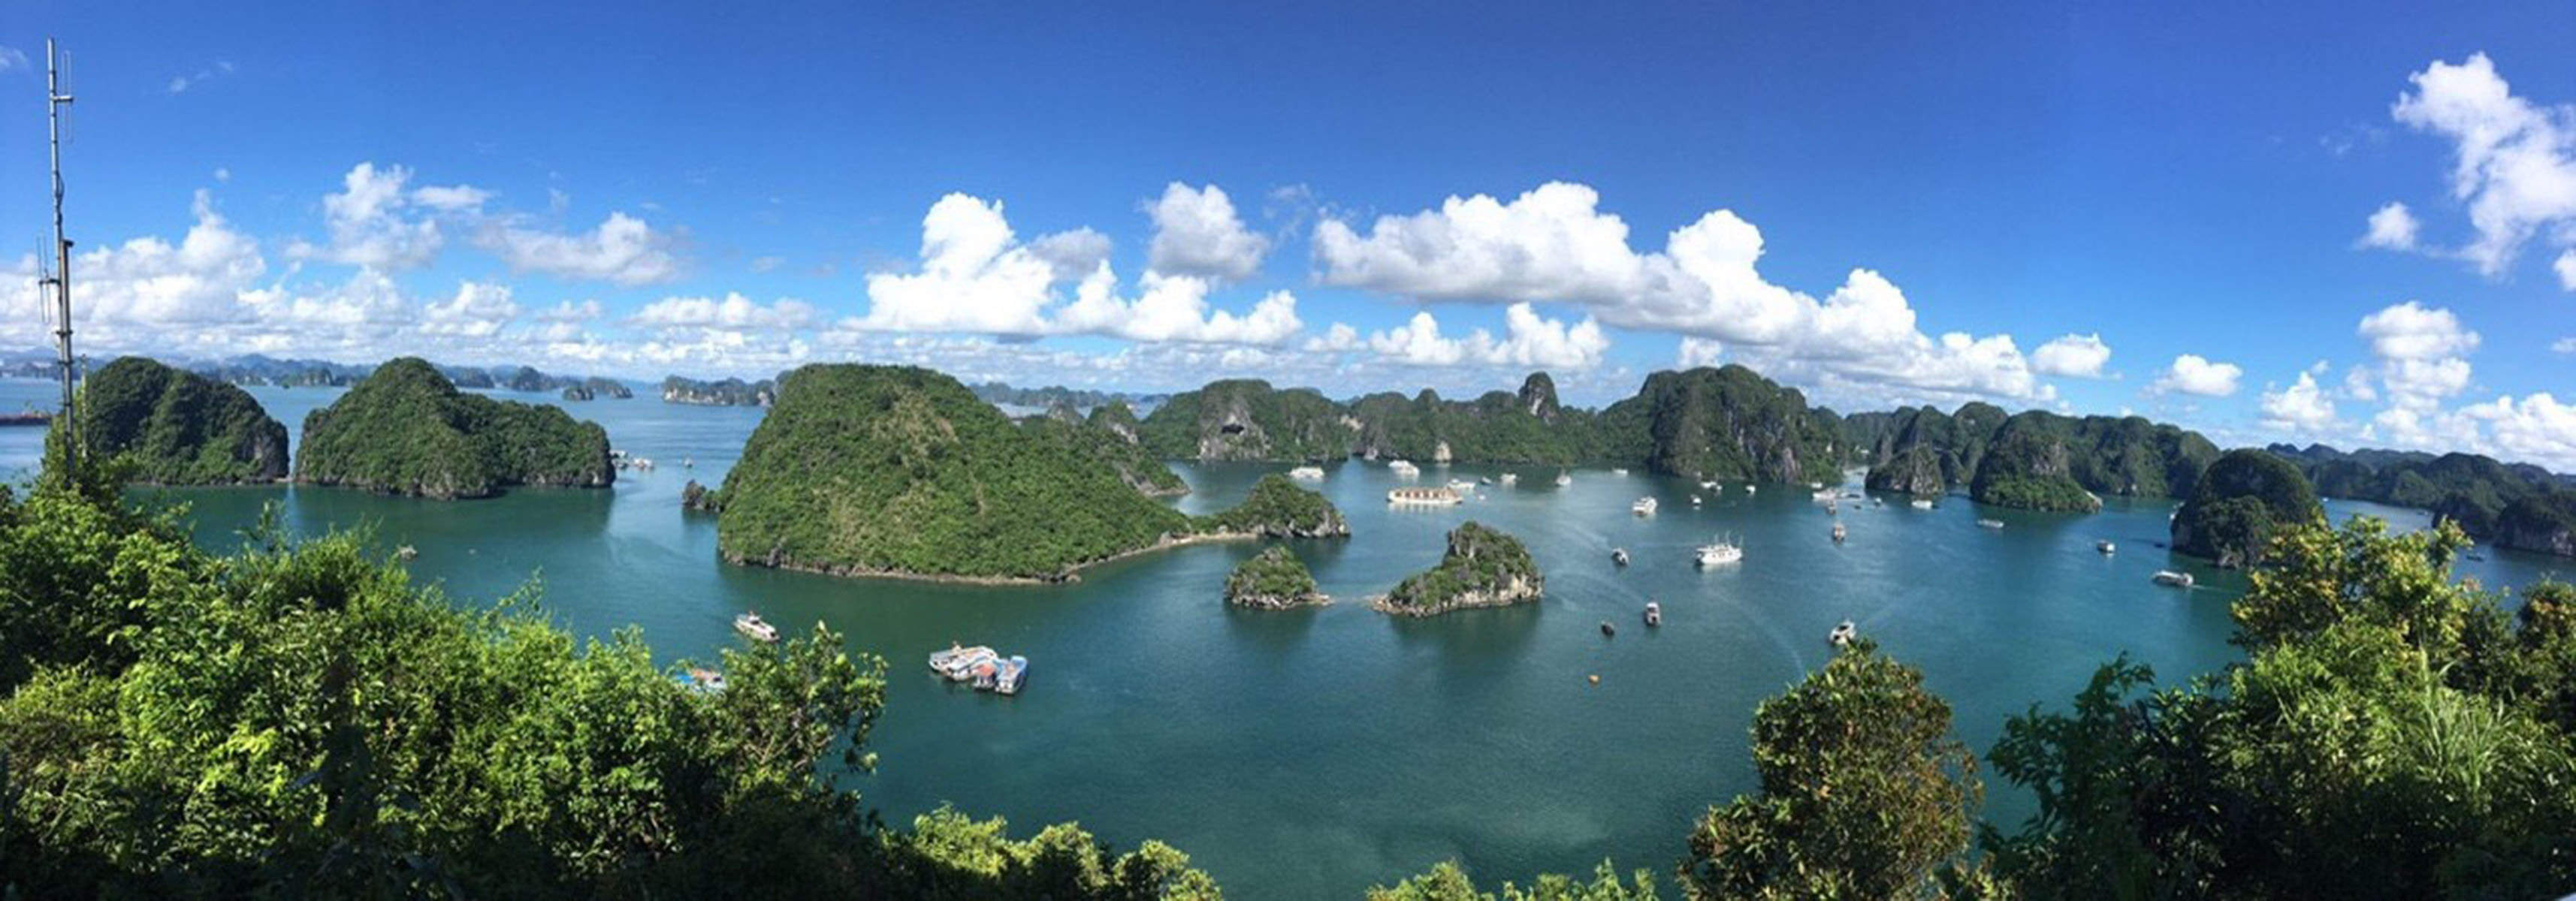 Ha-Long-bay-from-Titop-island